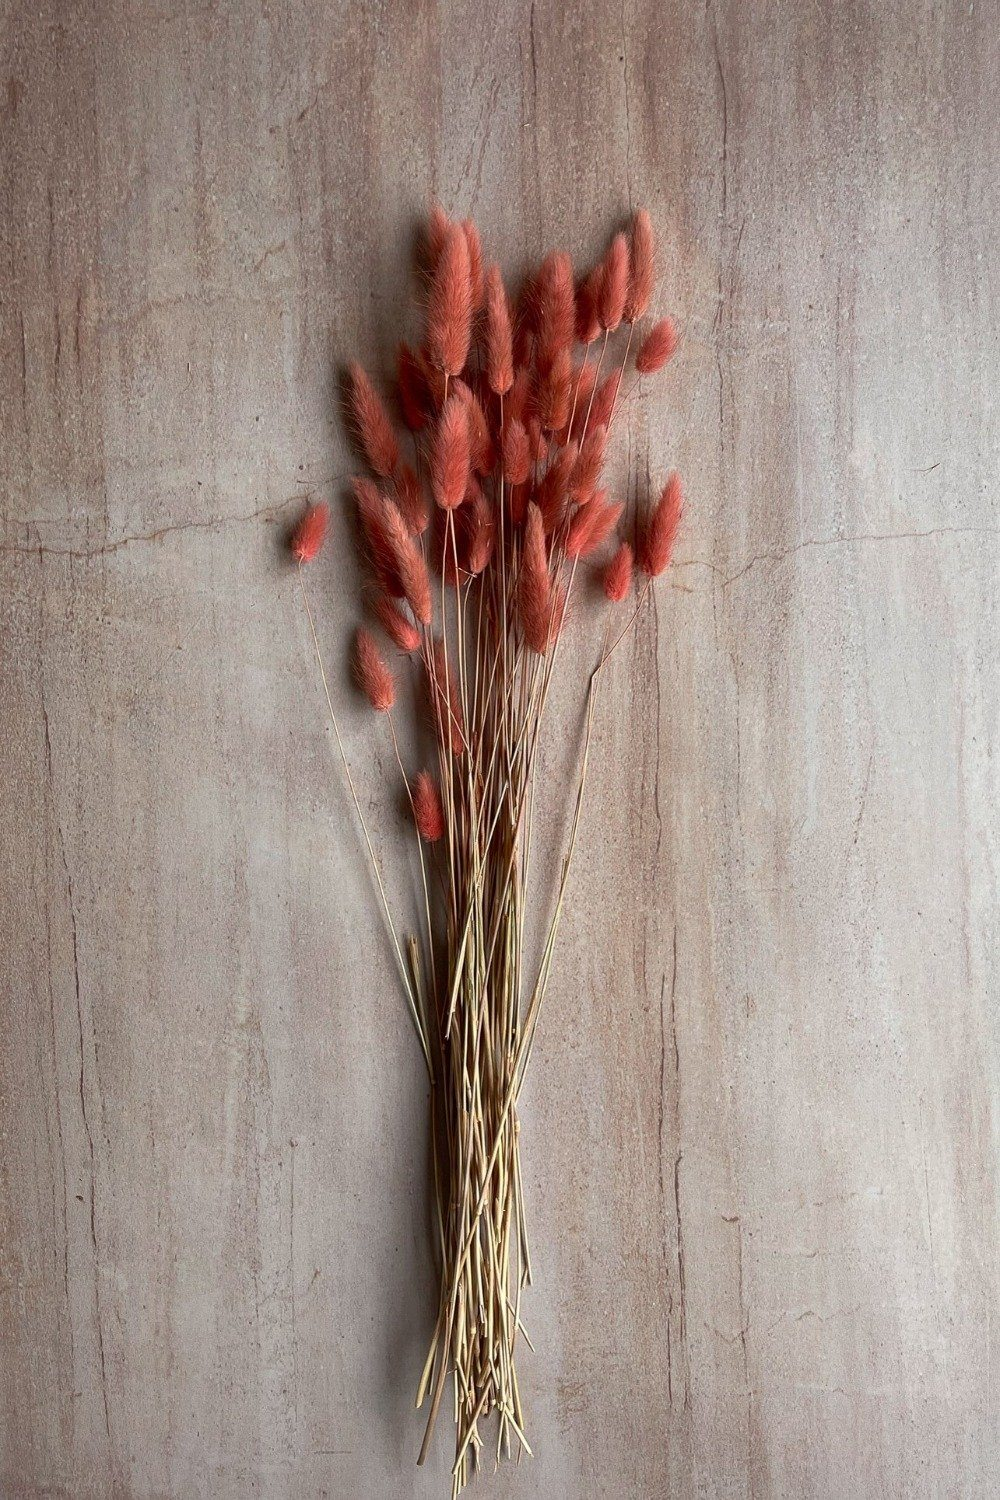 Dried Bunny Tails Bunch - Antique Pink Dried Flowers Blume